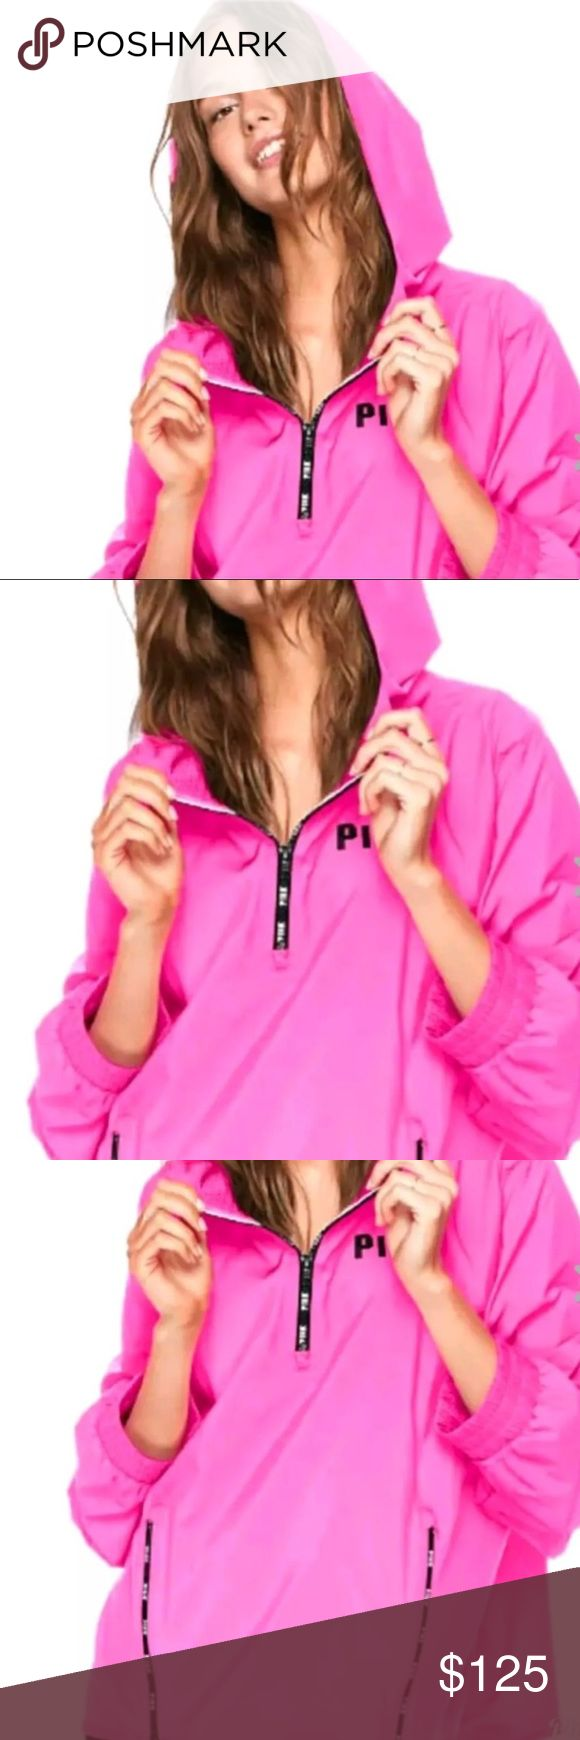 🌷🌷VS Pink Anorak Jacket! 🌷🌷 Brand New and Never Worn!! This is a SOLD OUT and super LIMITED EDITION anorak jacket by Pink!! 🌟💯🙌 Size M/L  More images coming soon!!  TV is $150 PINK Jackets & Coats